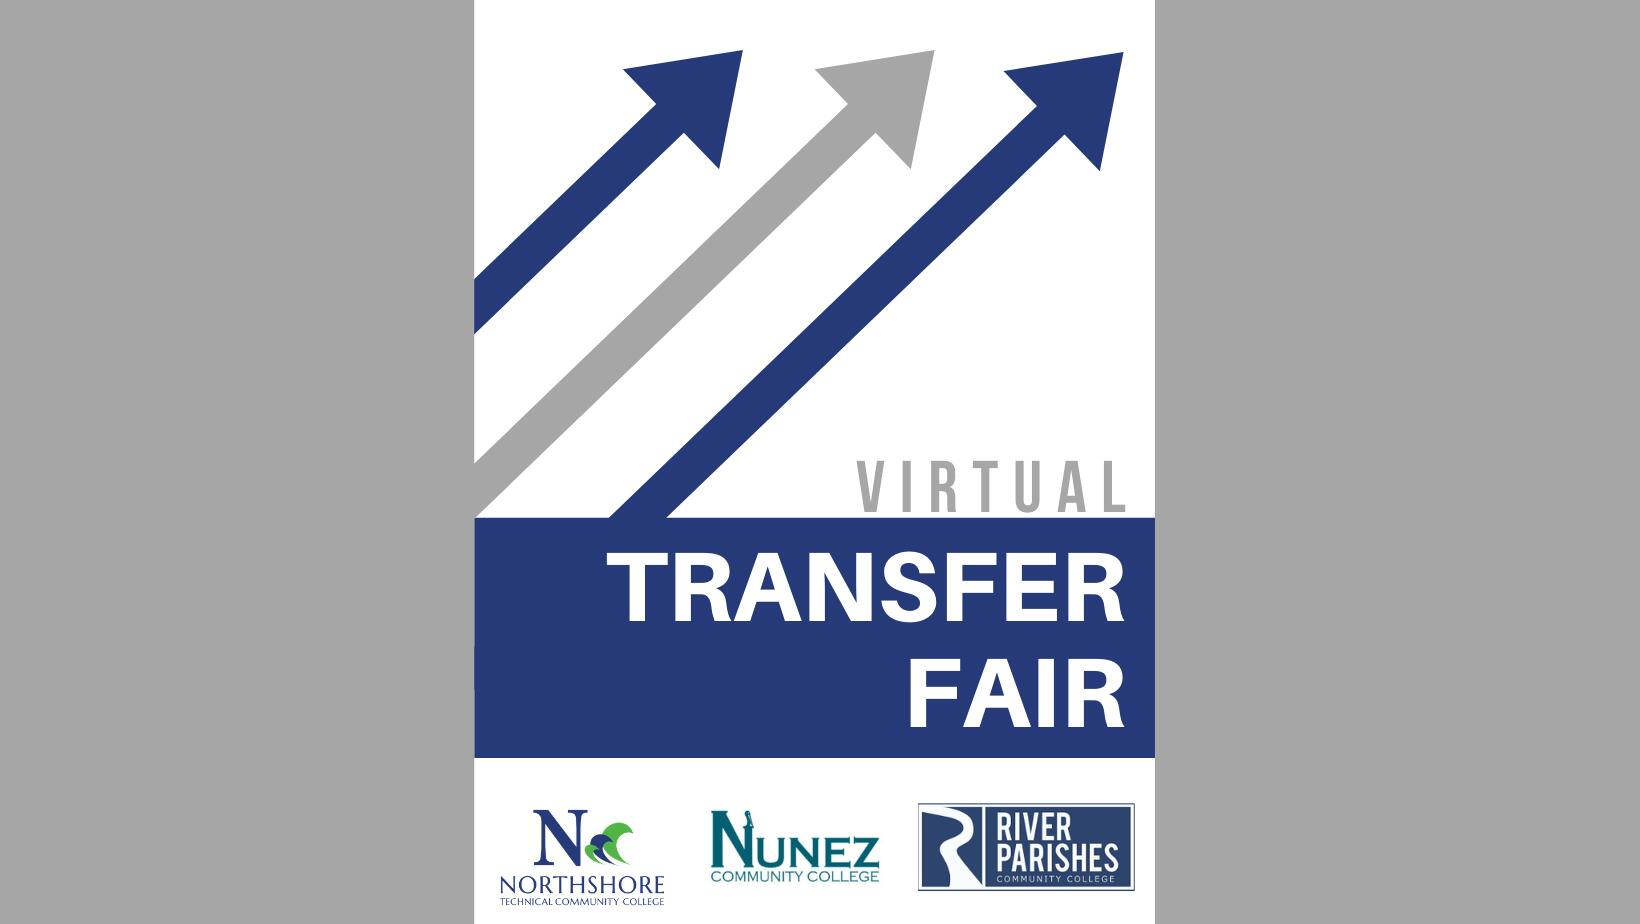 Virtual Transfer Fair